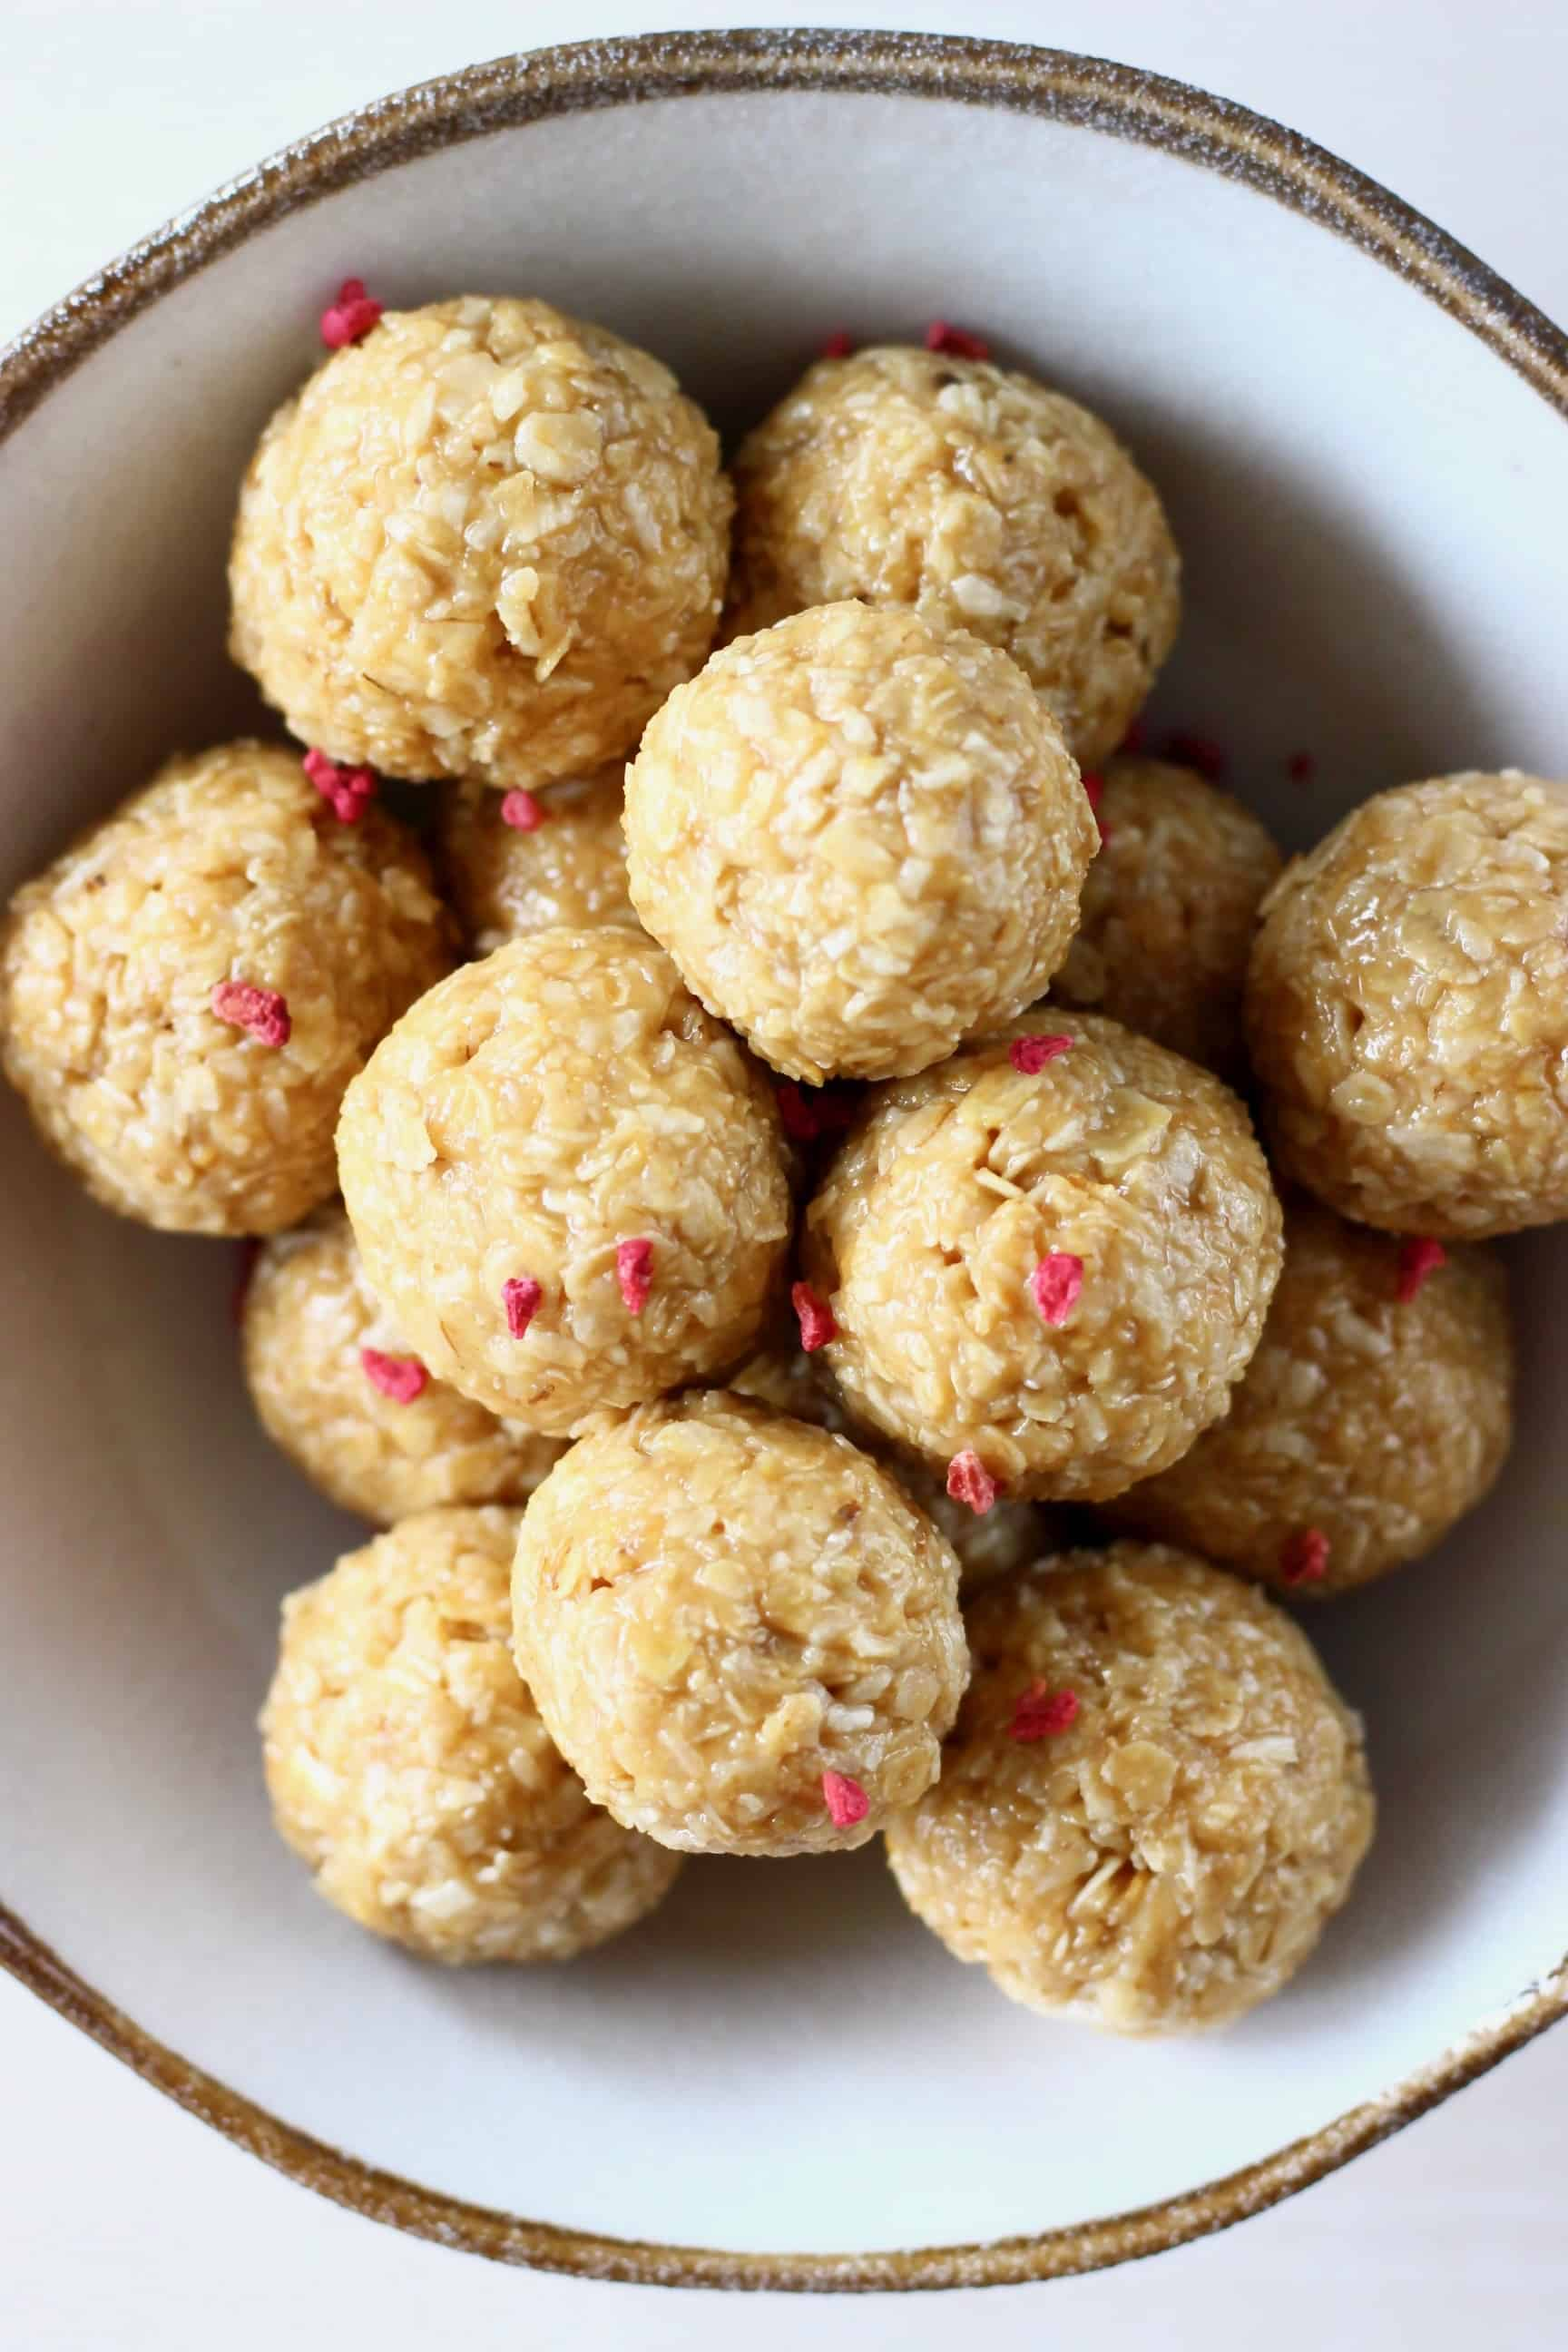 A pile of no-bake energy bites in a bowl